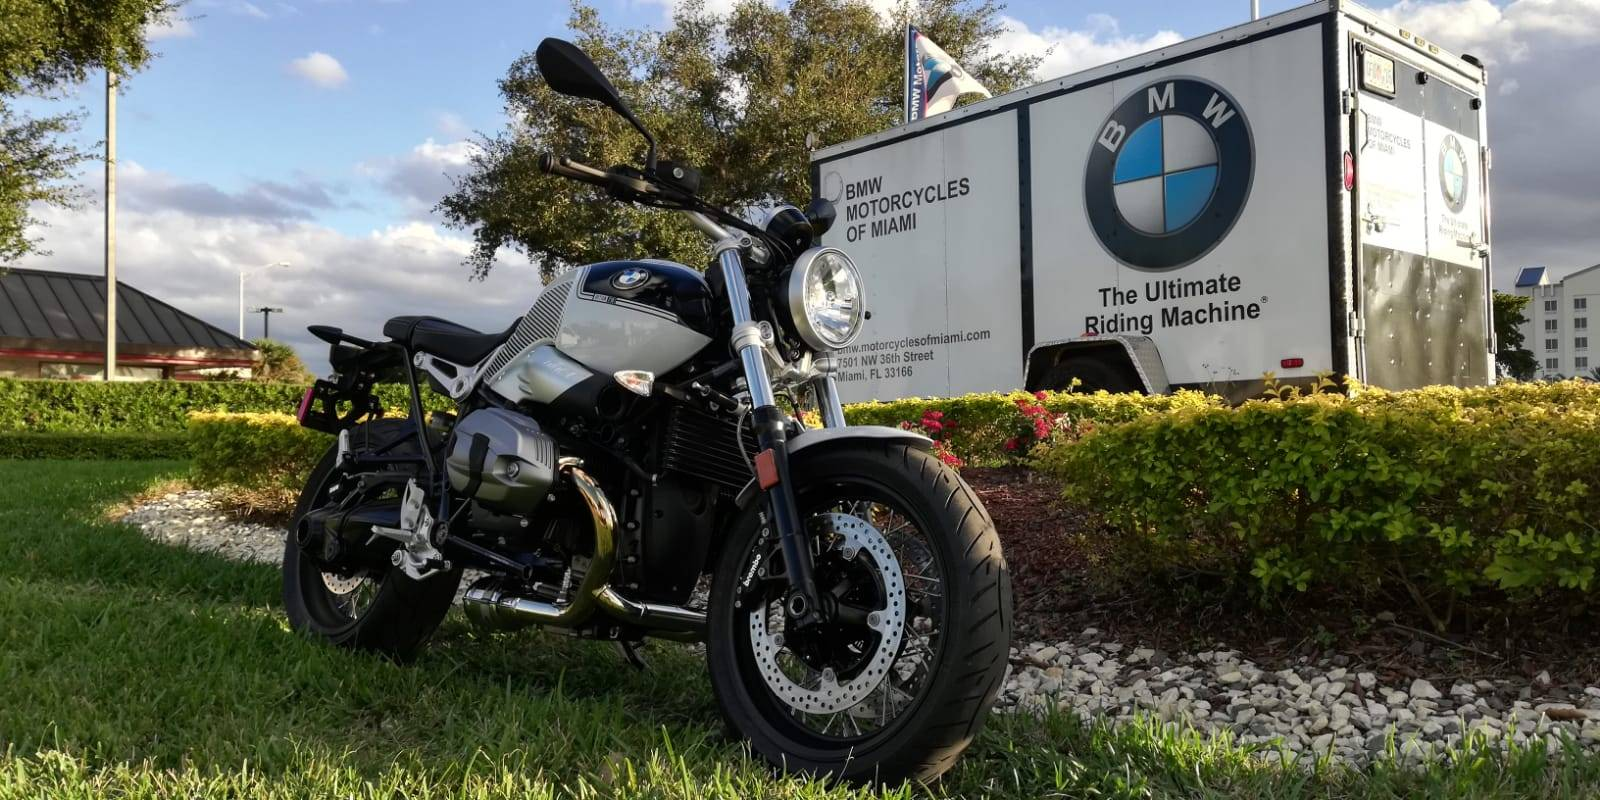 New 2019 BMW R nine T Pure for sale, BMW R nineT Pure for sale, BMW Motorcycle Pure, new BMW Pure, Cafe racer, BMW Motorcycles of Miami, Motorcycles of Miami, Motorcycles Miami, New Motorcycles, Used Motorcycles, pre-owned. #BMWMotorcyclesOfMiami #MotorcyclesOfMiami.